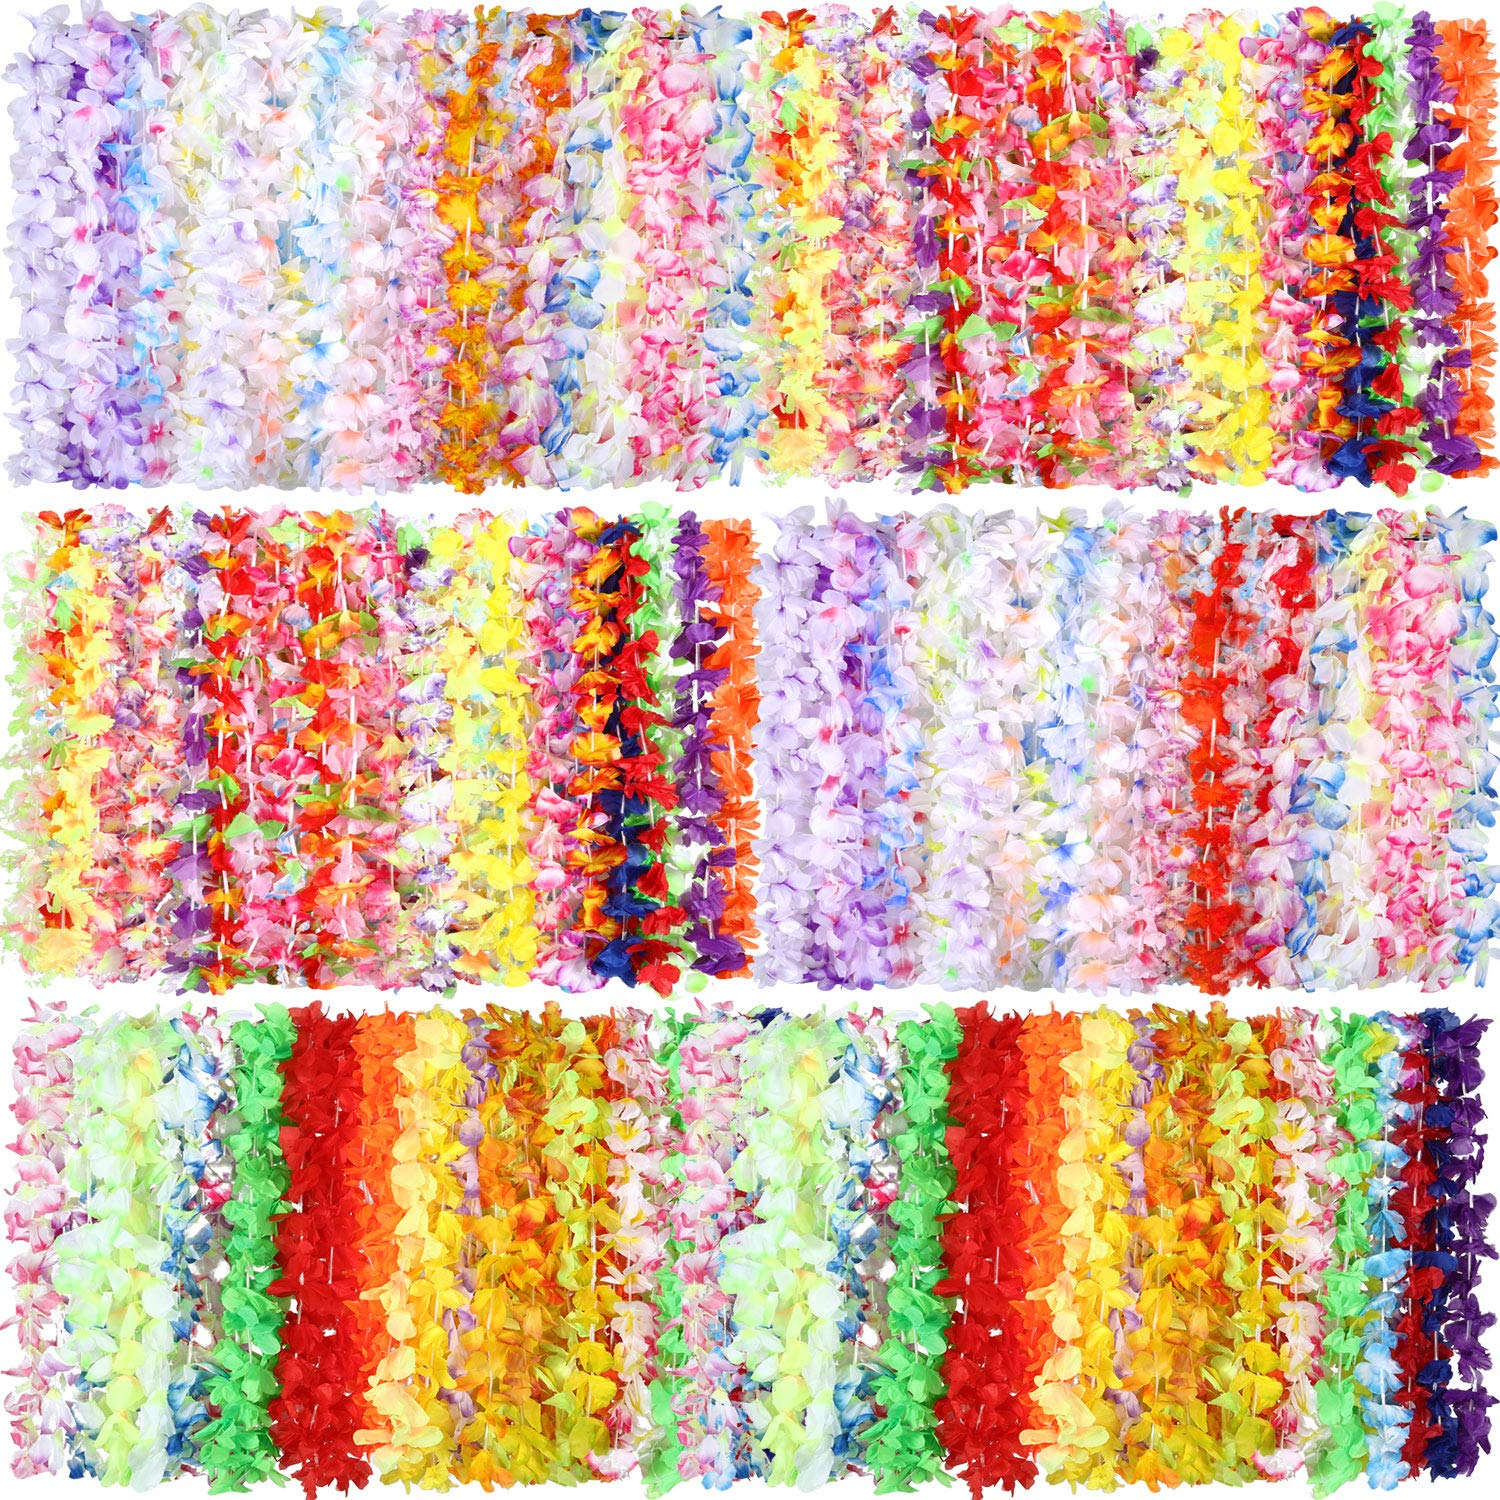 Shappy 100 Pieces Flower Tropical Hawaiian Leis Necklaces for Beach Theme Party Supplies Decorations Favors Ornaments (Style 3)